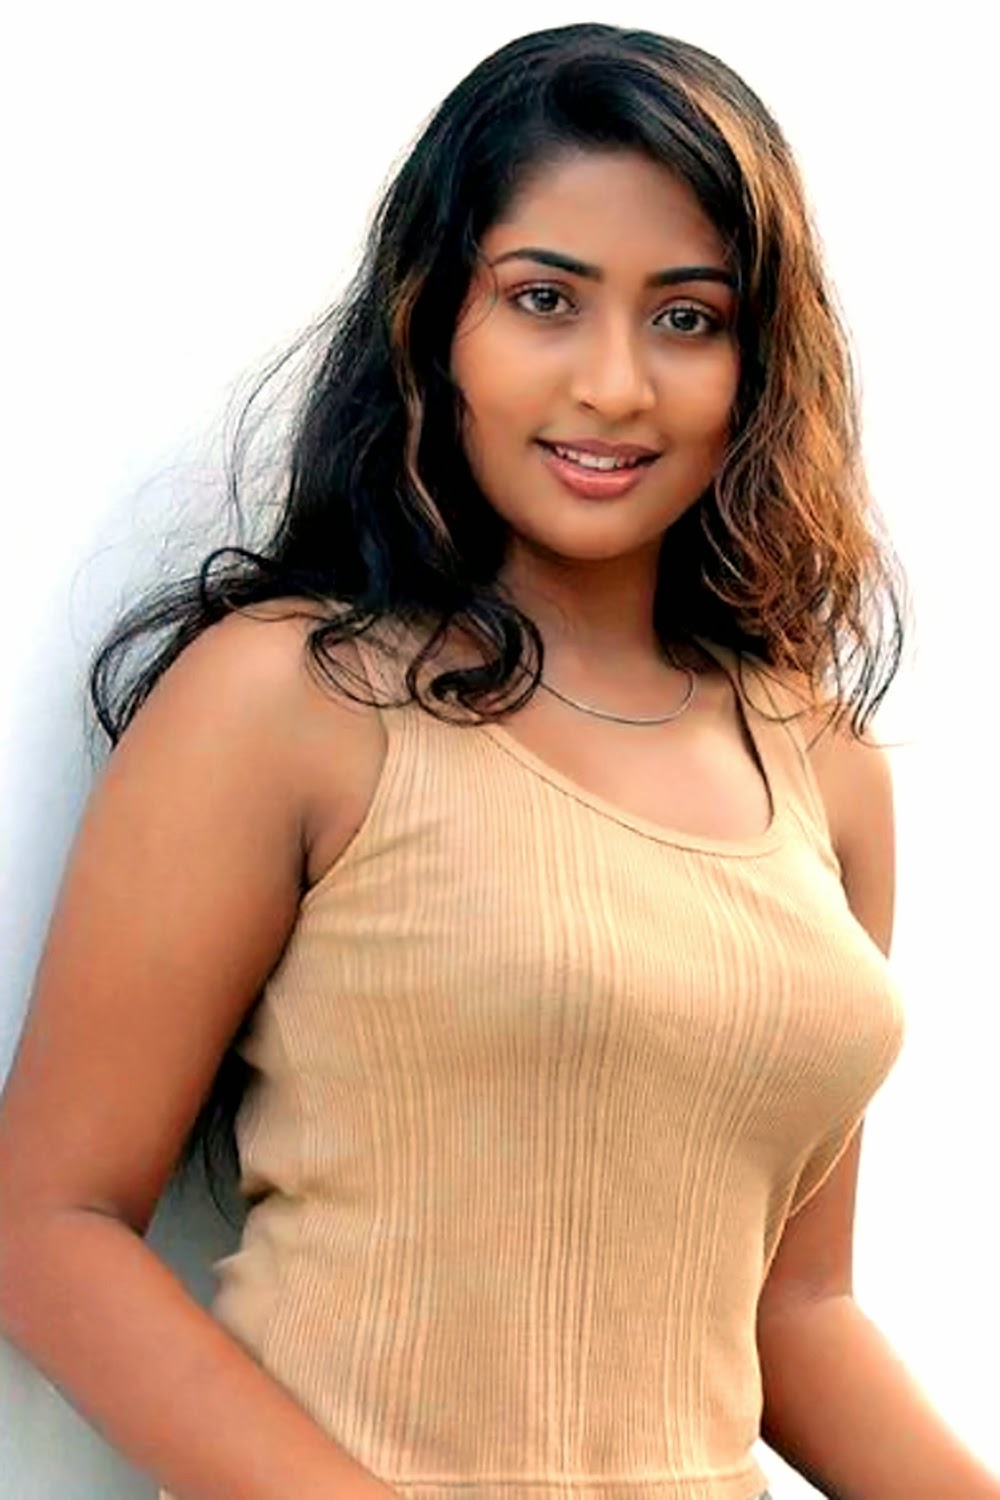 Malayalam actress navya nair hot in T shirt